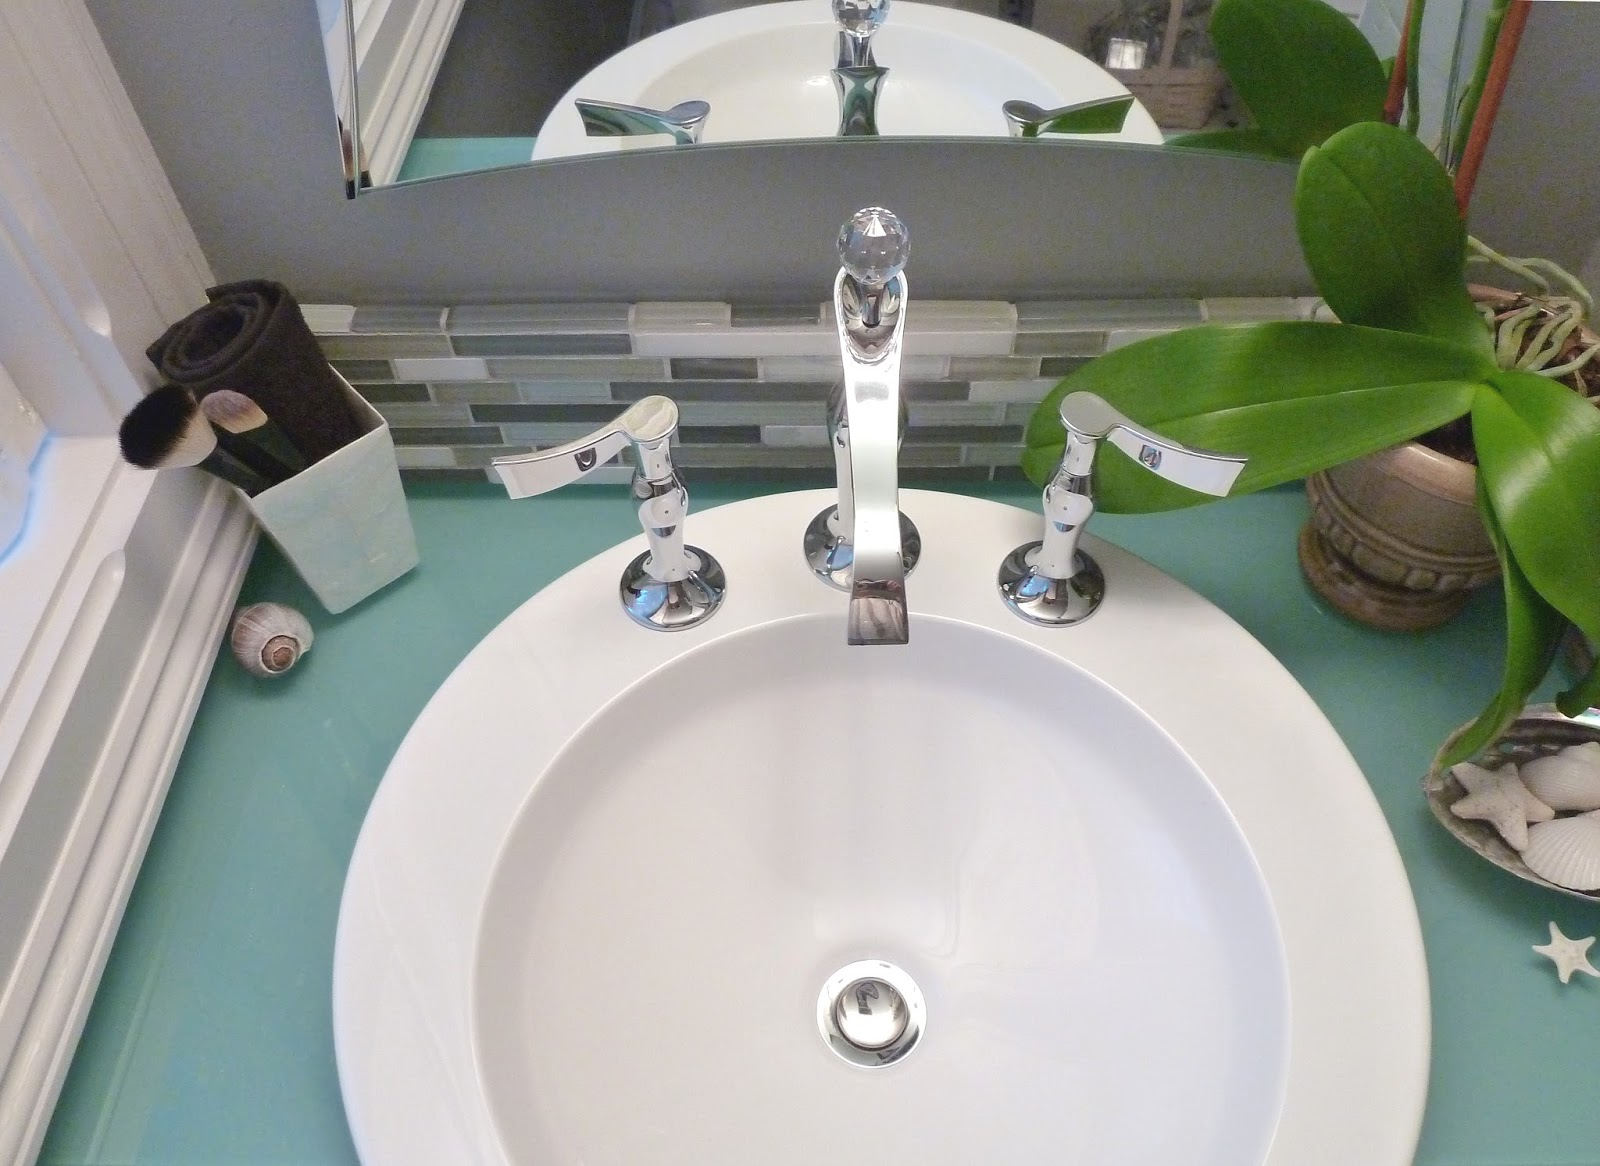 Design Vignettes Final Pics From York Show House